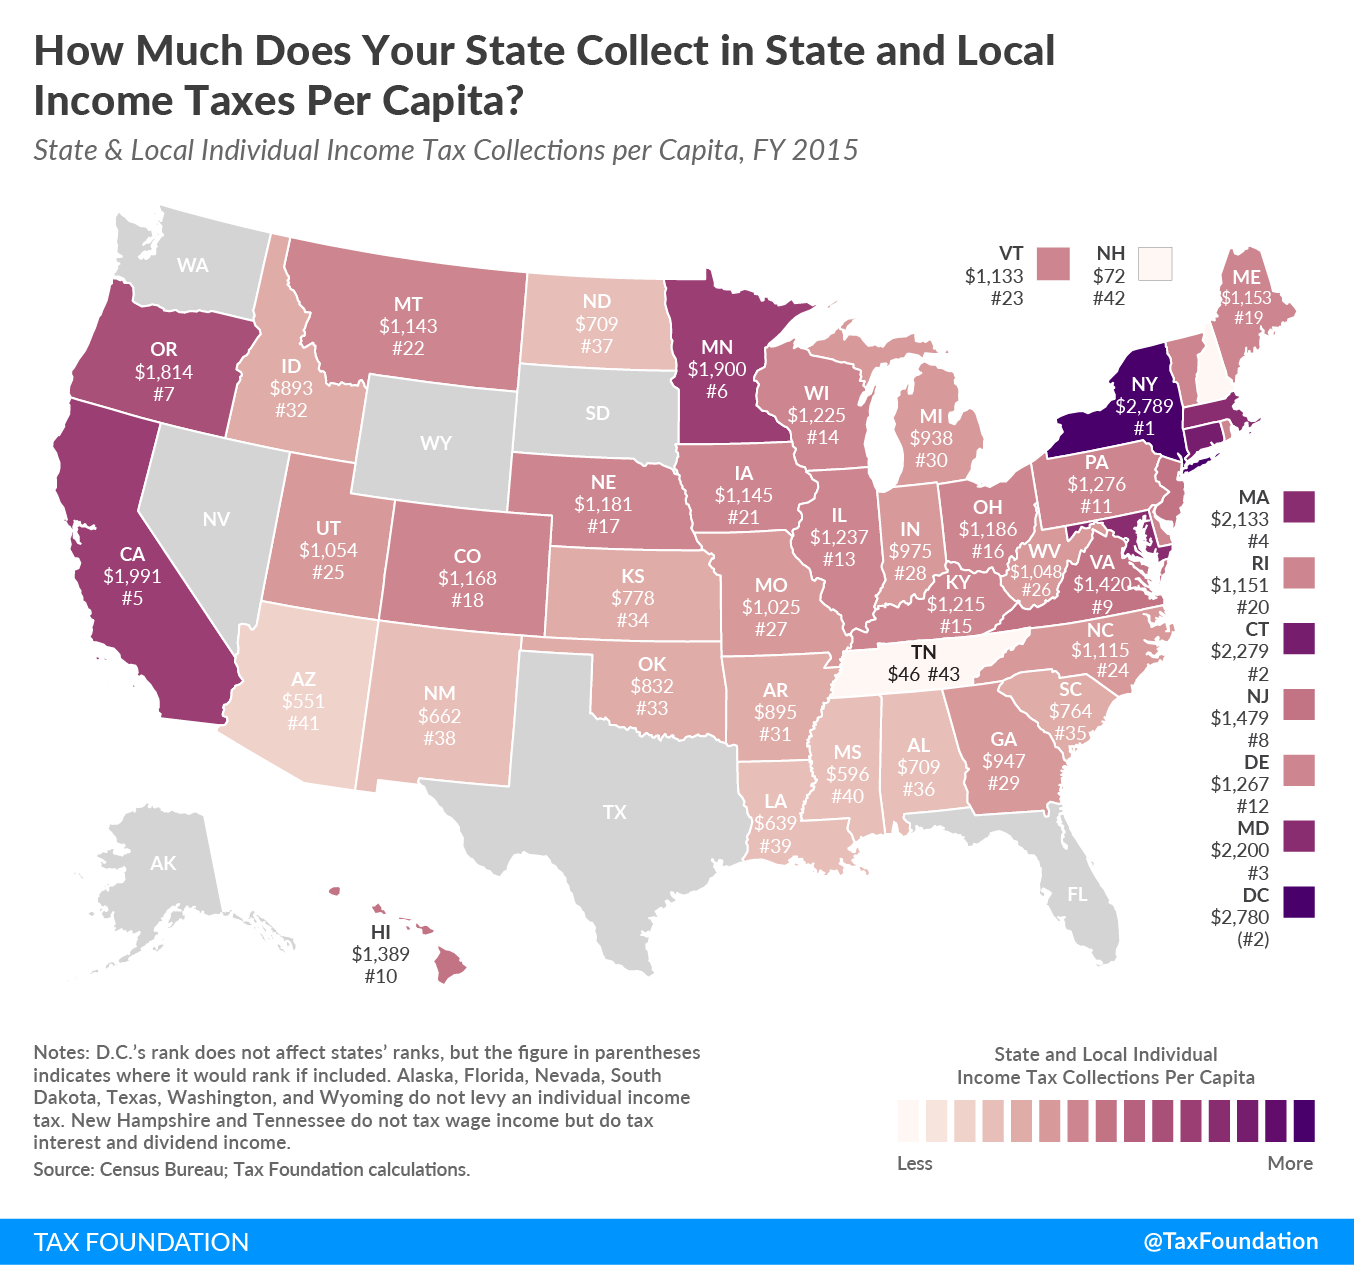 State and Local Individual Income Tax Collections Per Capita